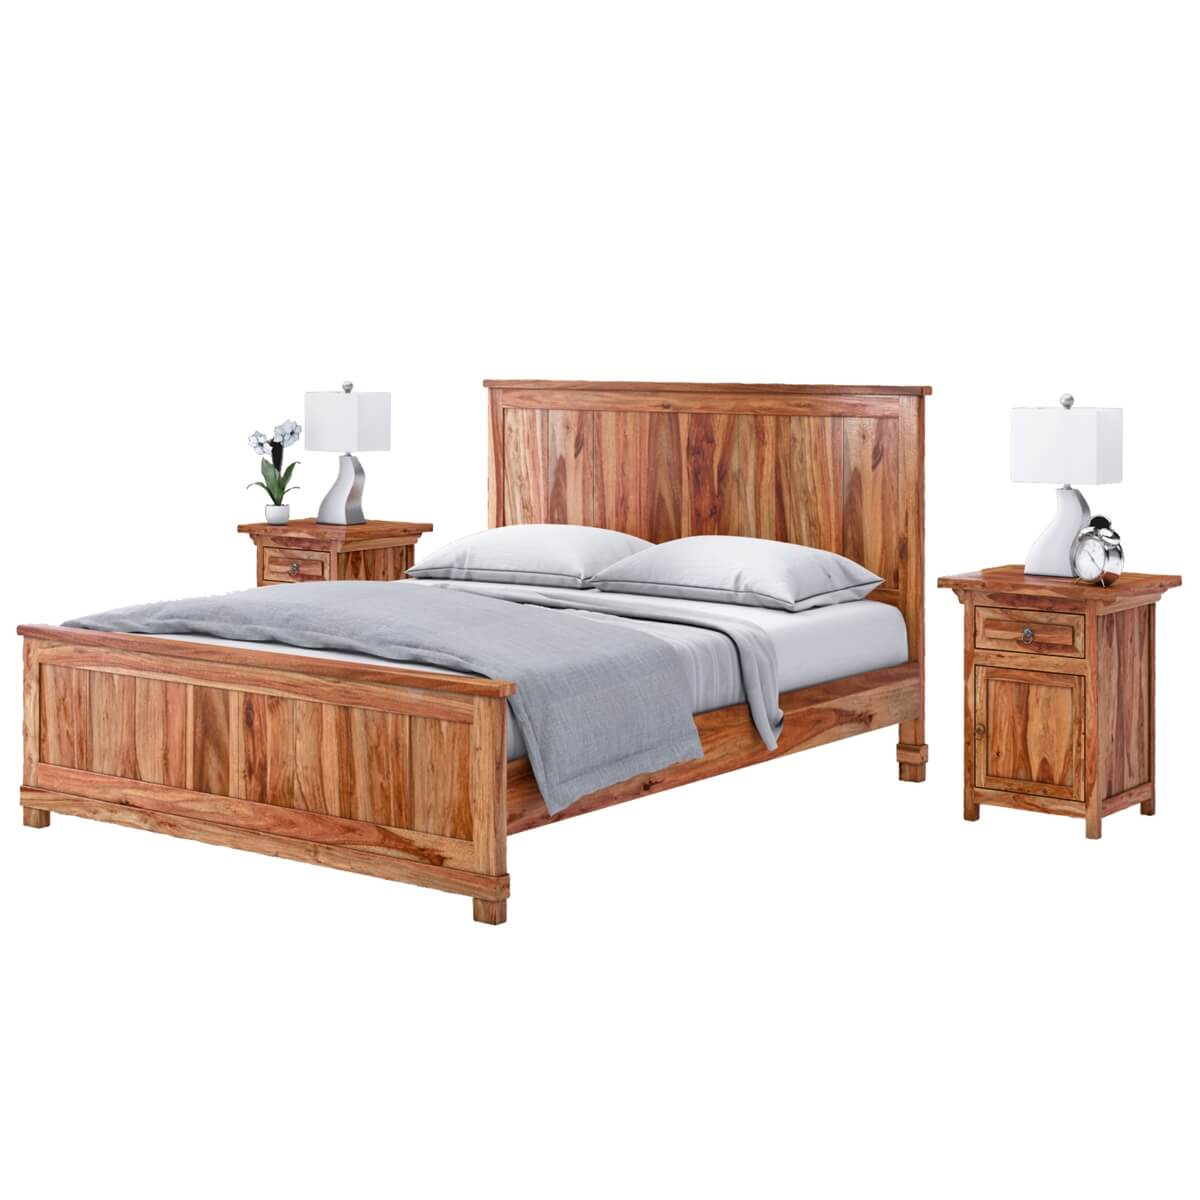 modern mission solid wood king size platform bed. Black Bedroom Furniture Sets. Home Design Ideas